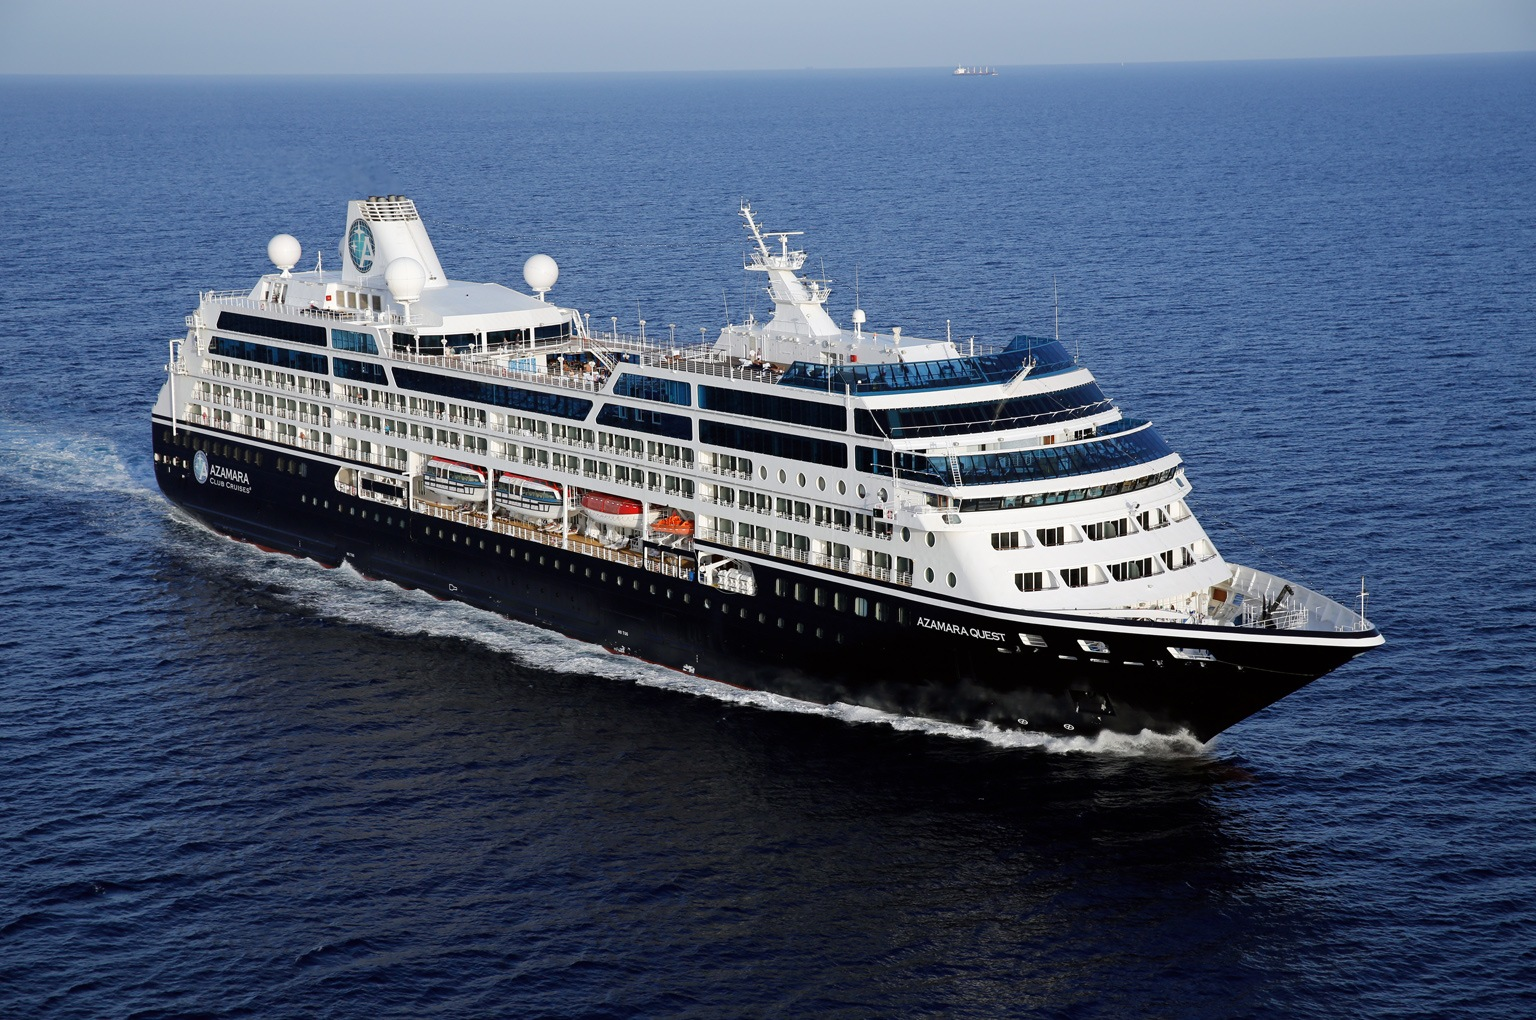 Azamara plans to extend its cruising suspension through June